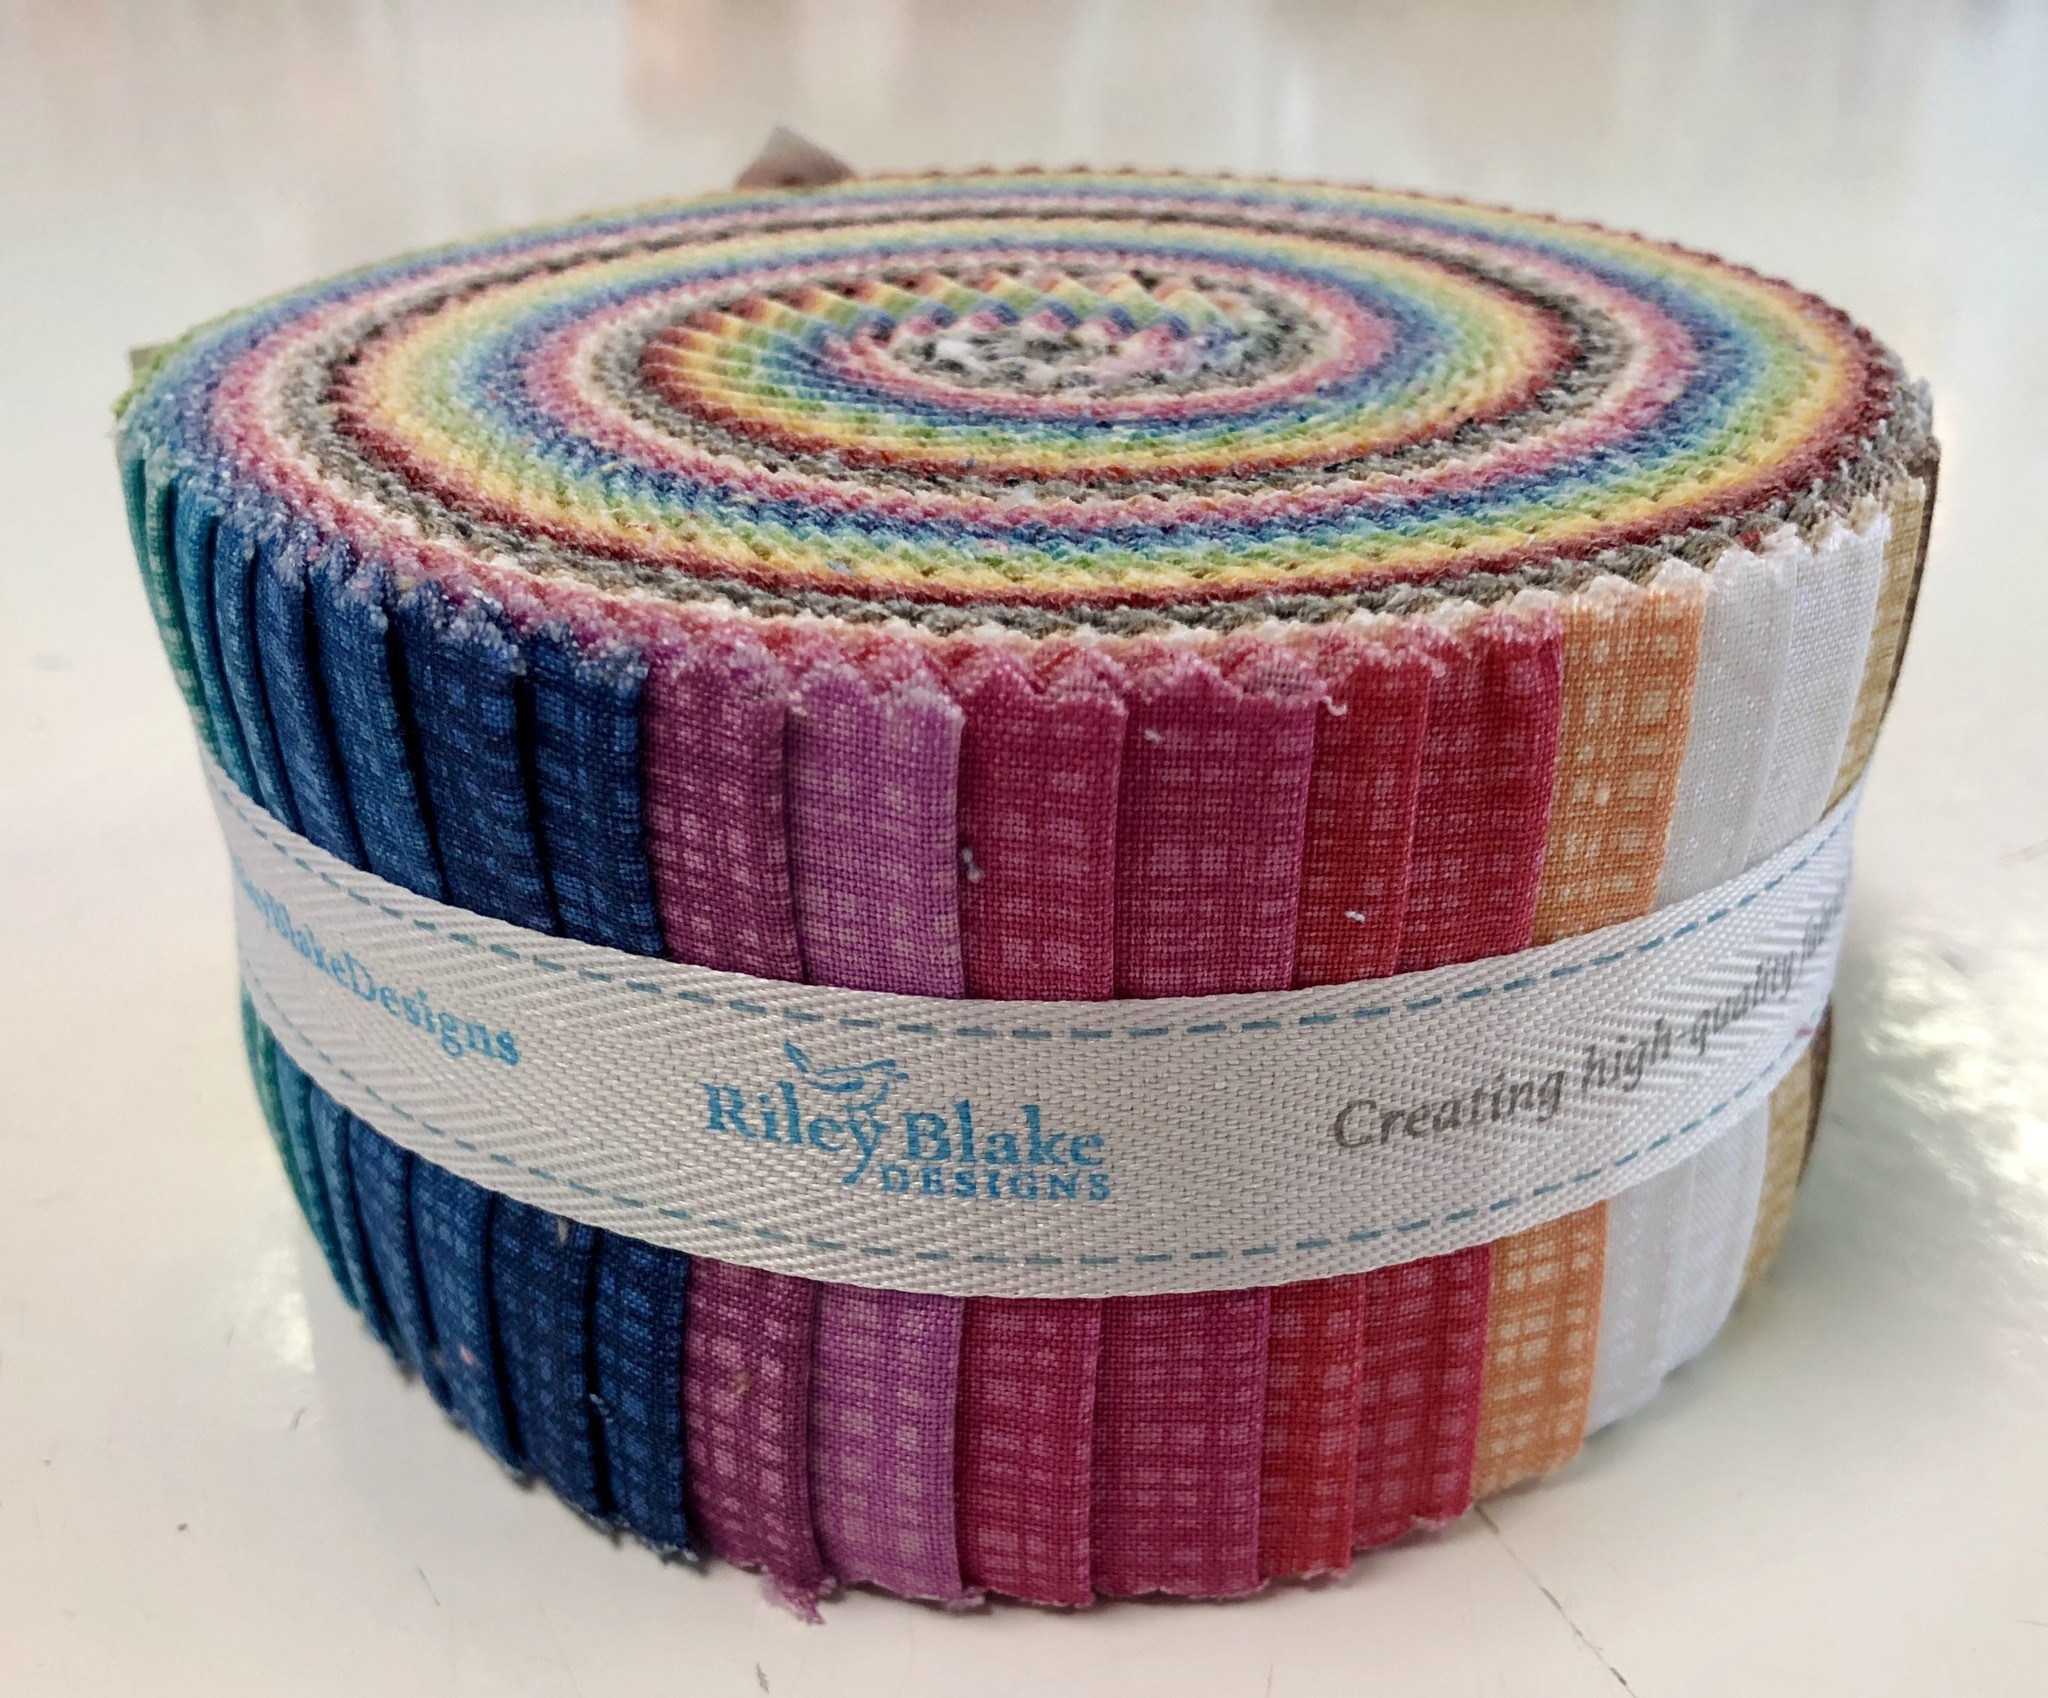 Textured - Riley Blake - Jelly Roll 55539